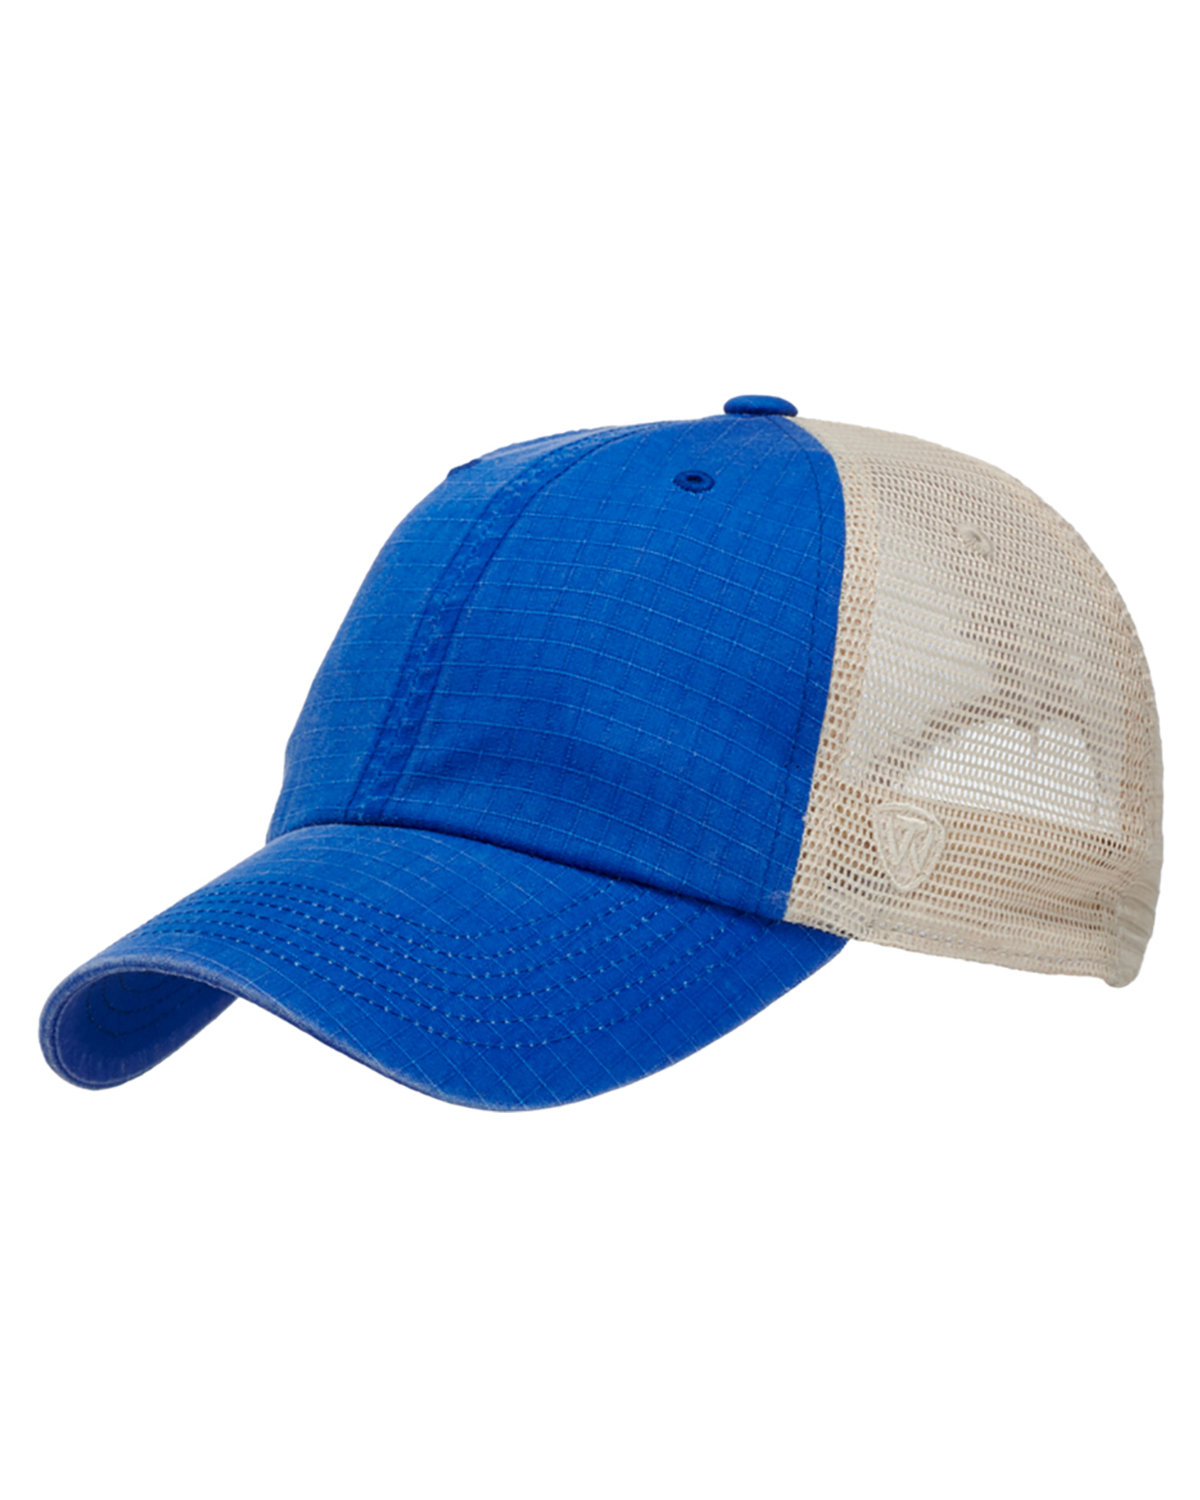 Top Of The World Riptide Ripstop Trucker Hat ROYAL